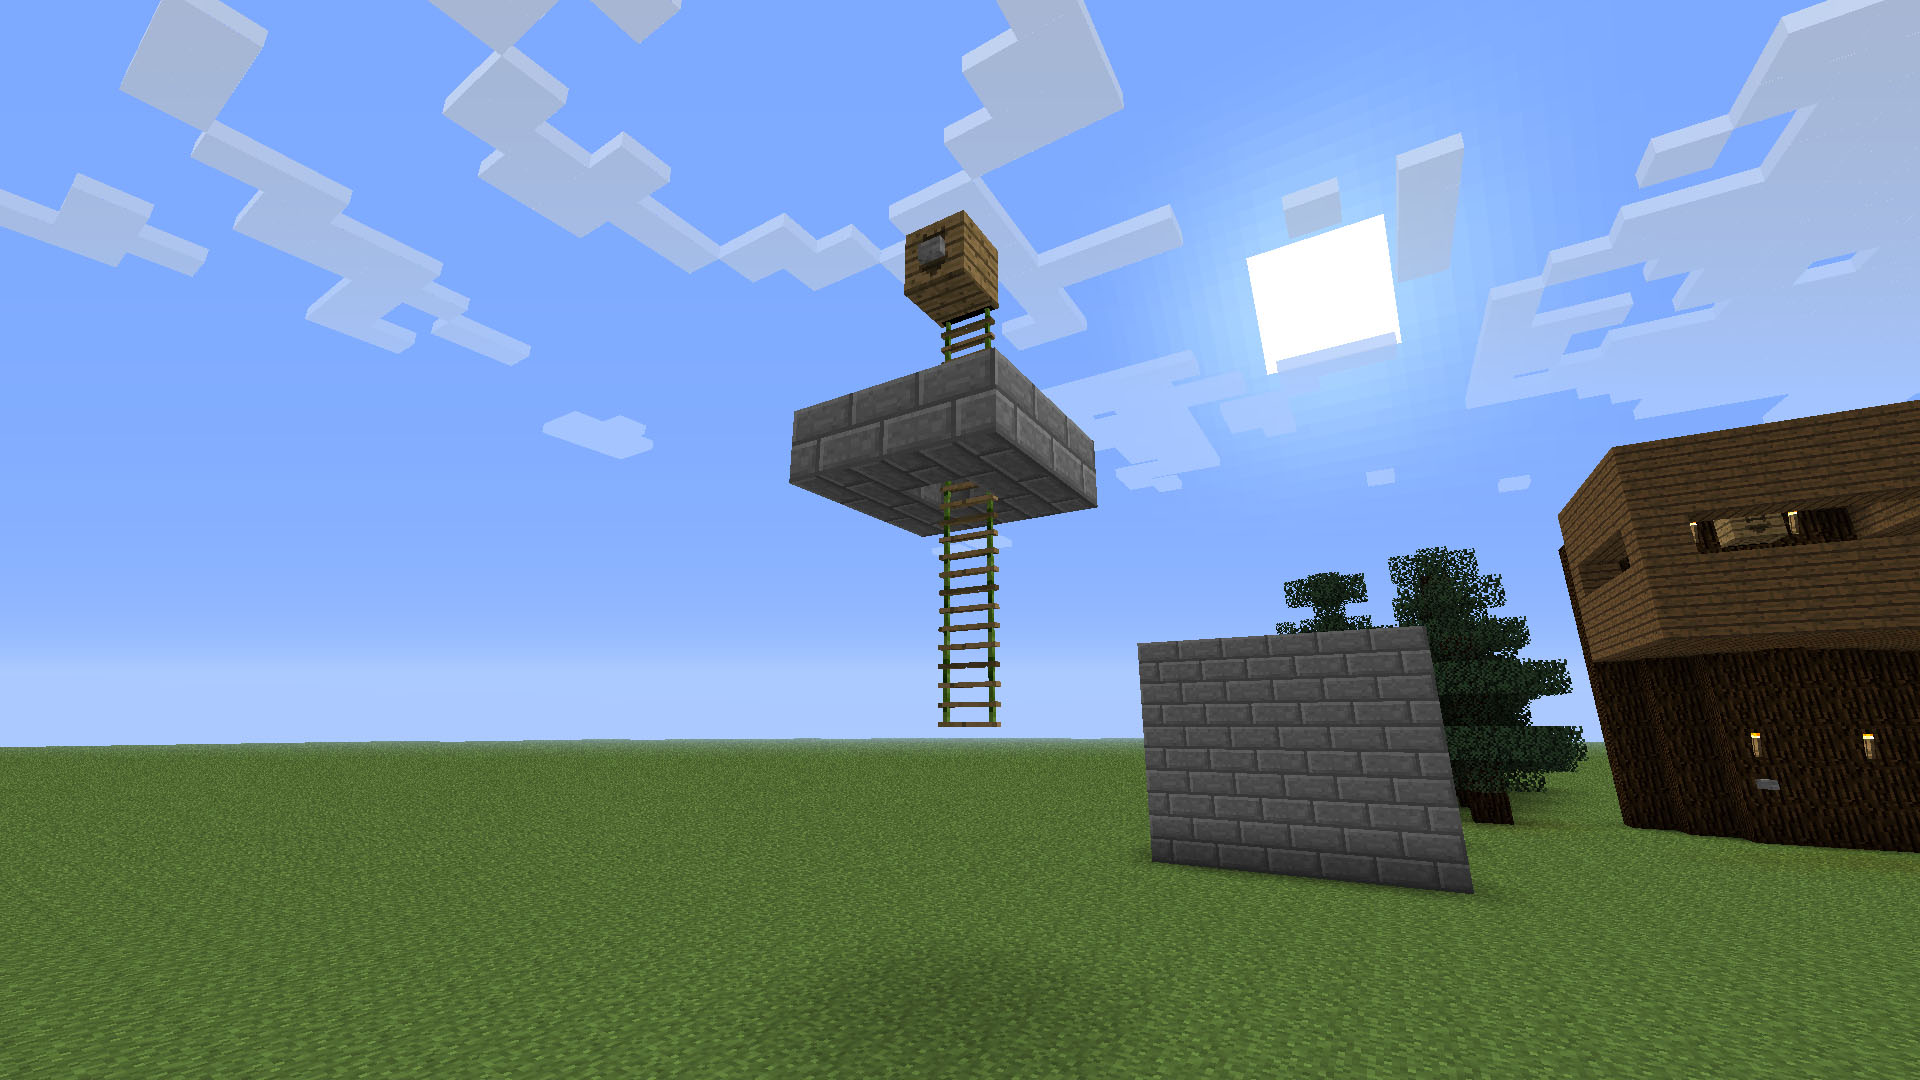 http://minecraft-forum.net/wp-content/uploads/2013/04/9df52__Retractable-Ladders-Mod-4.jpg